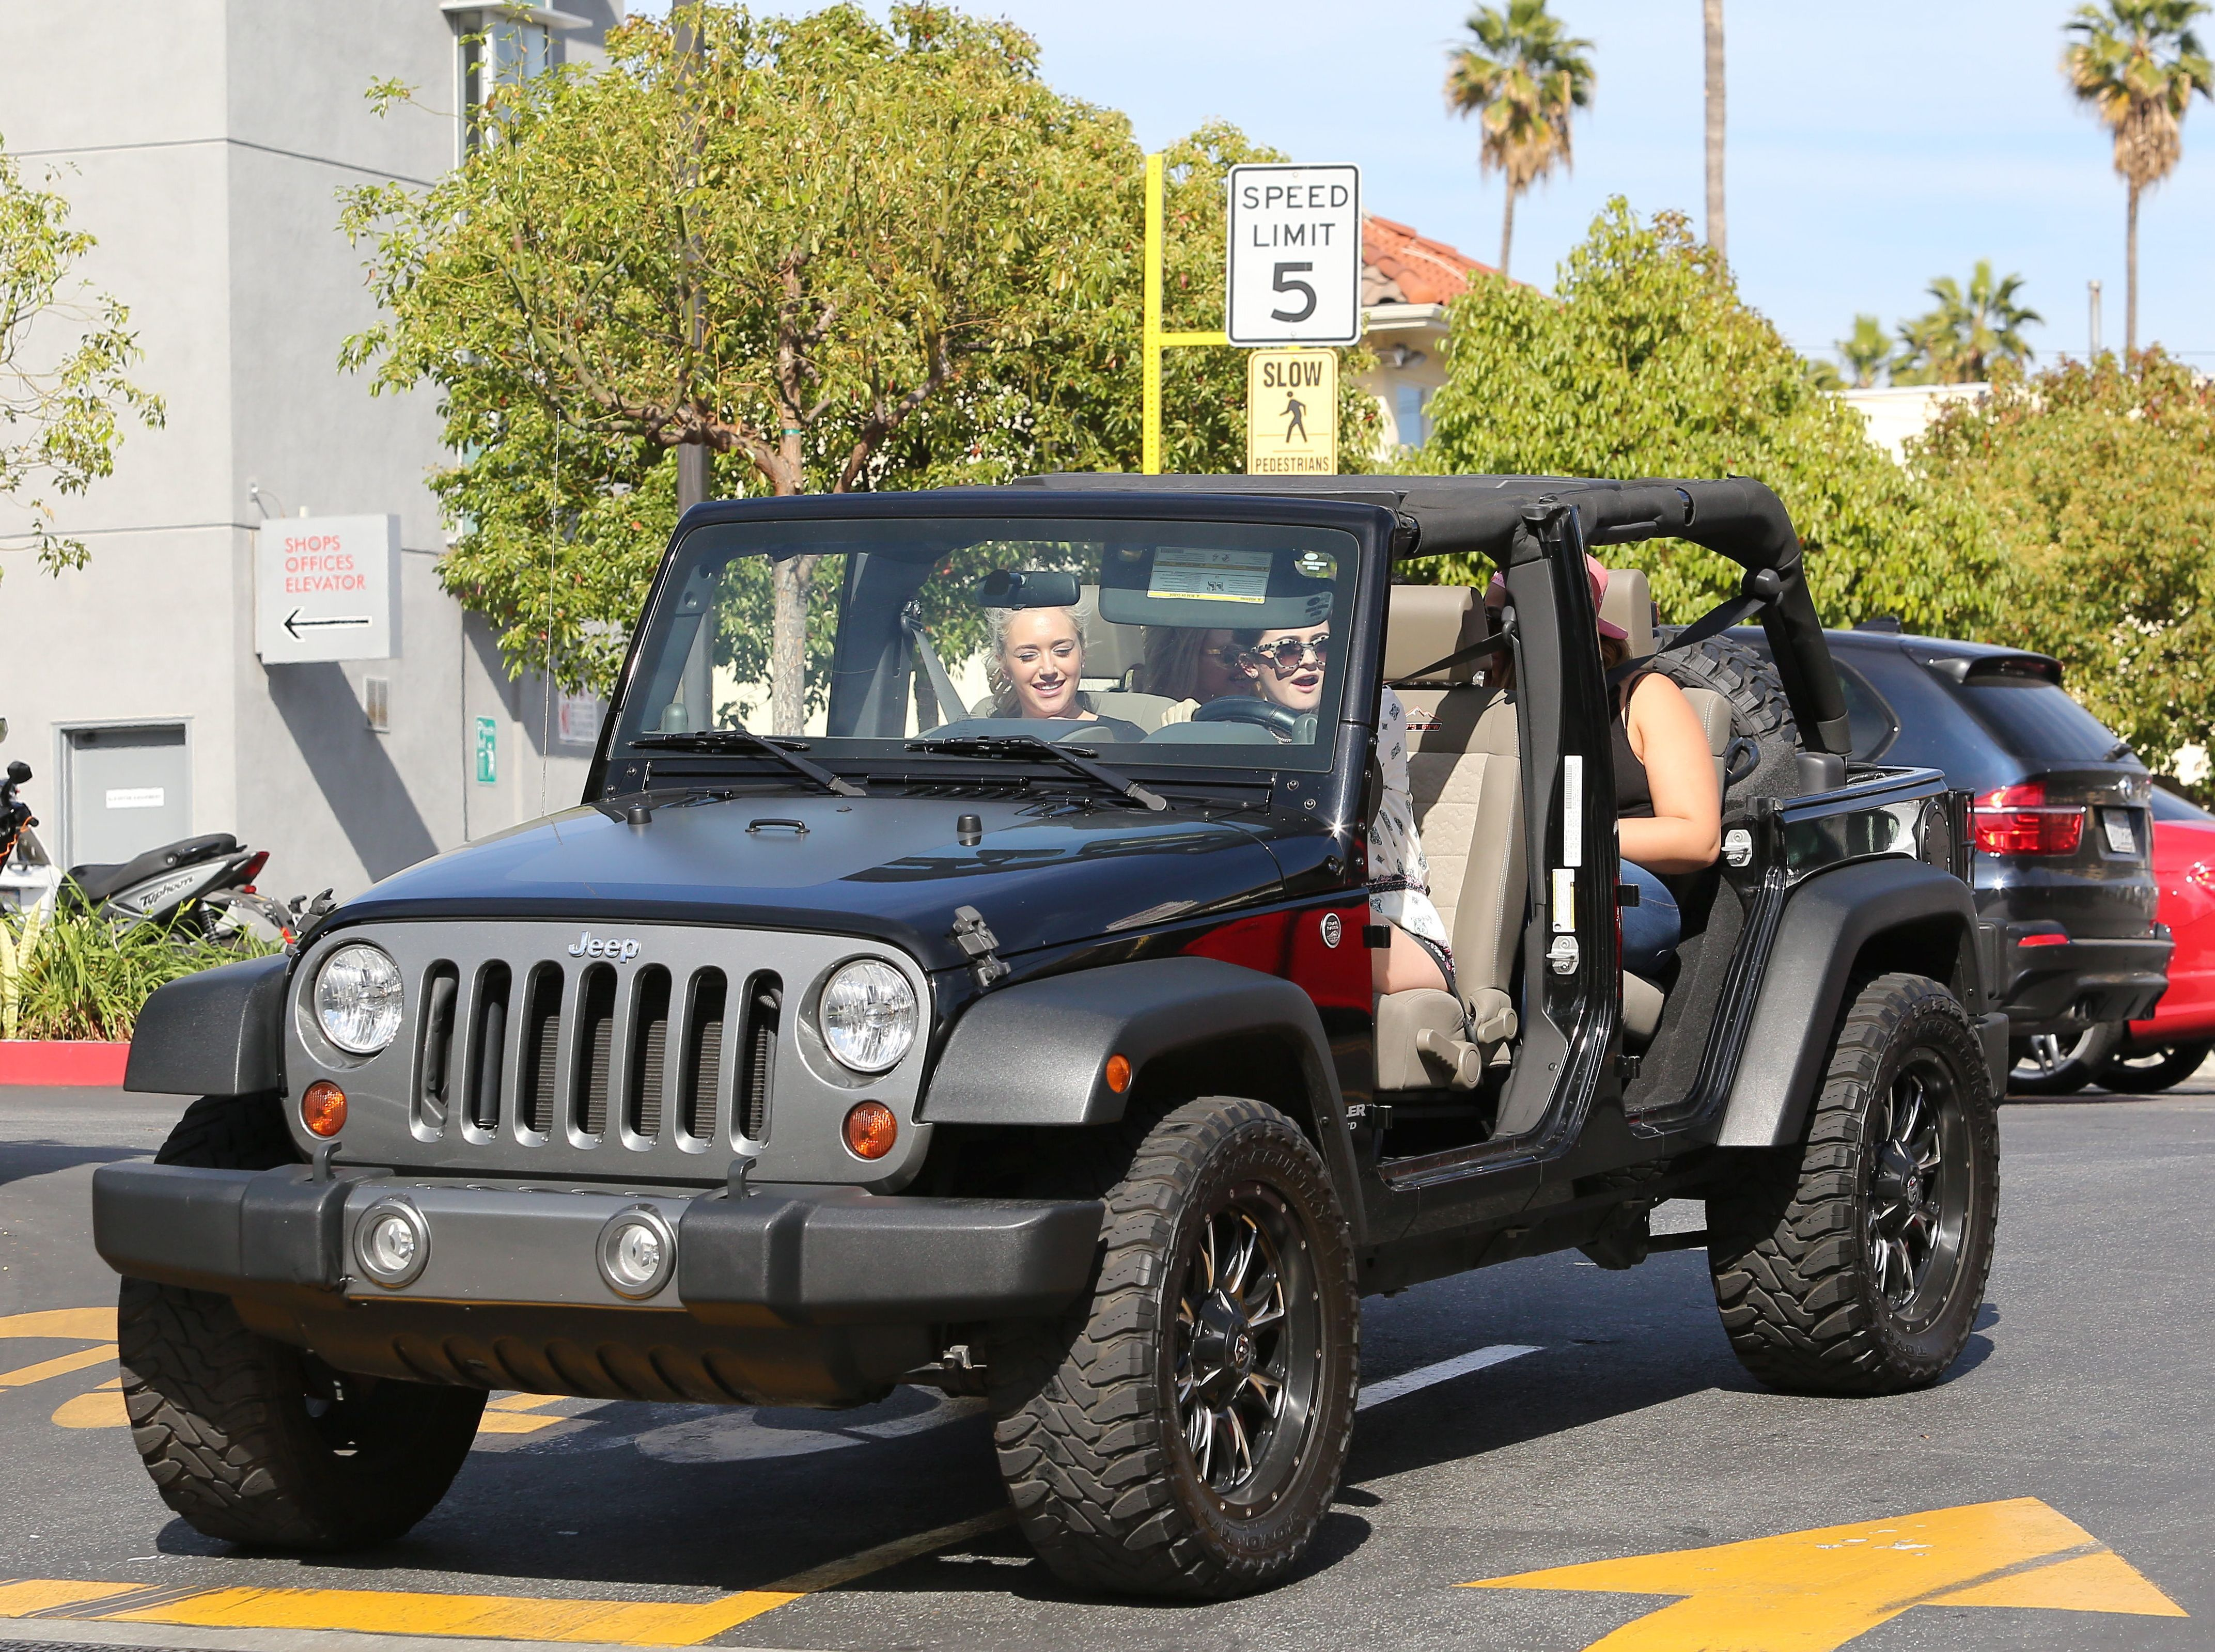 Kylie driving a jeep wrangler